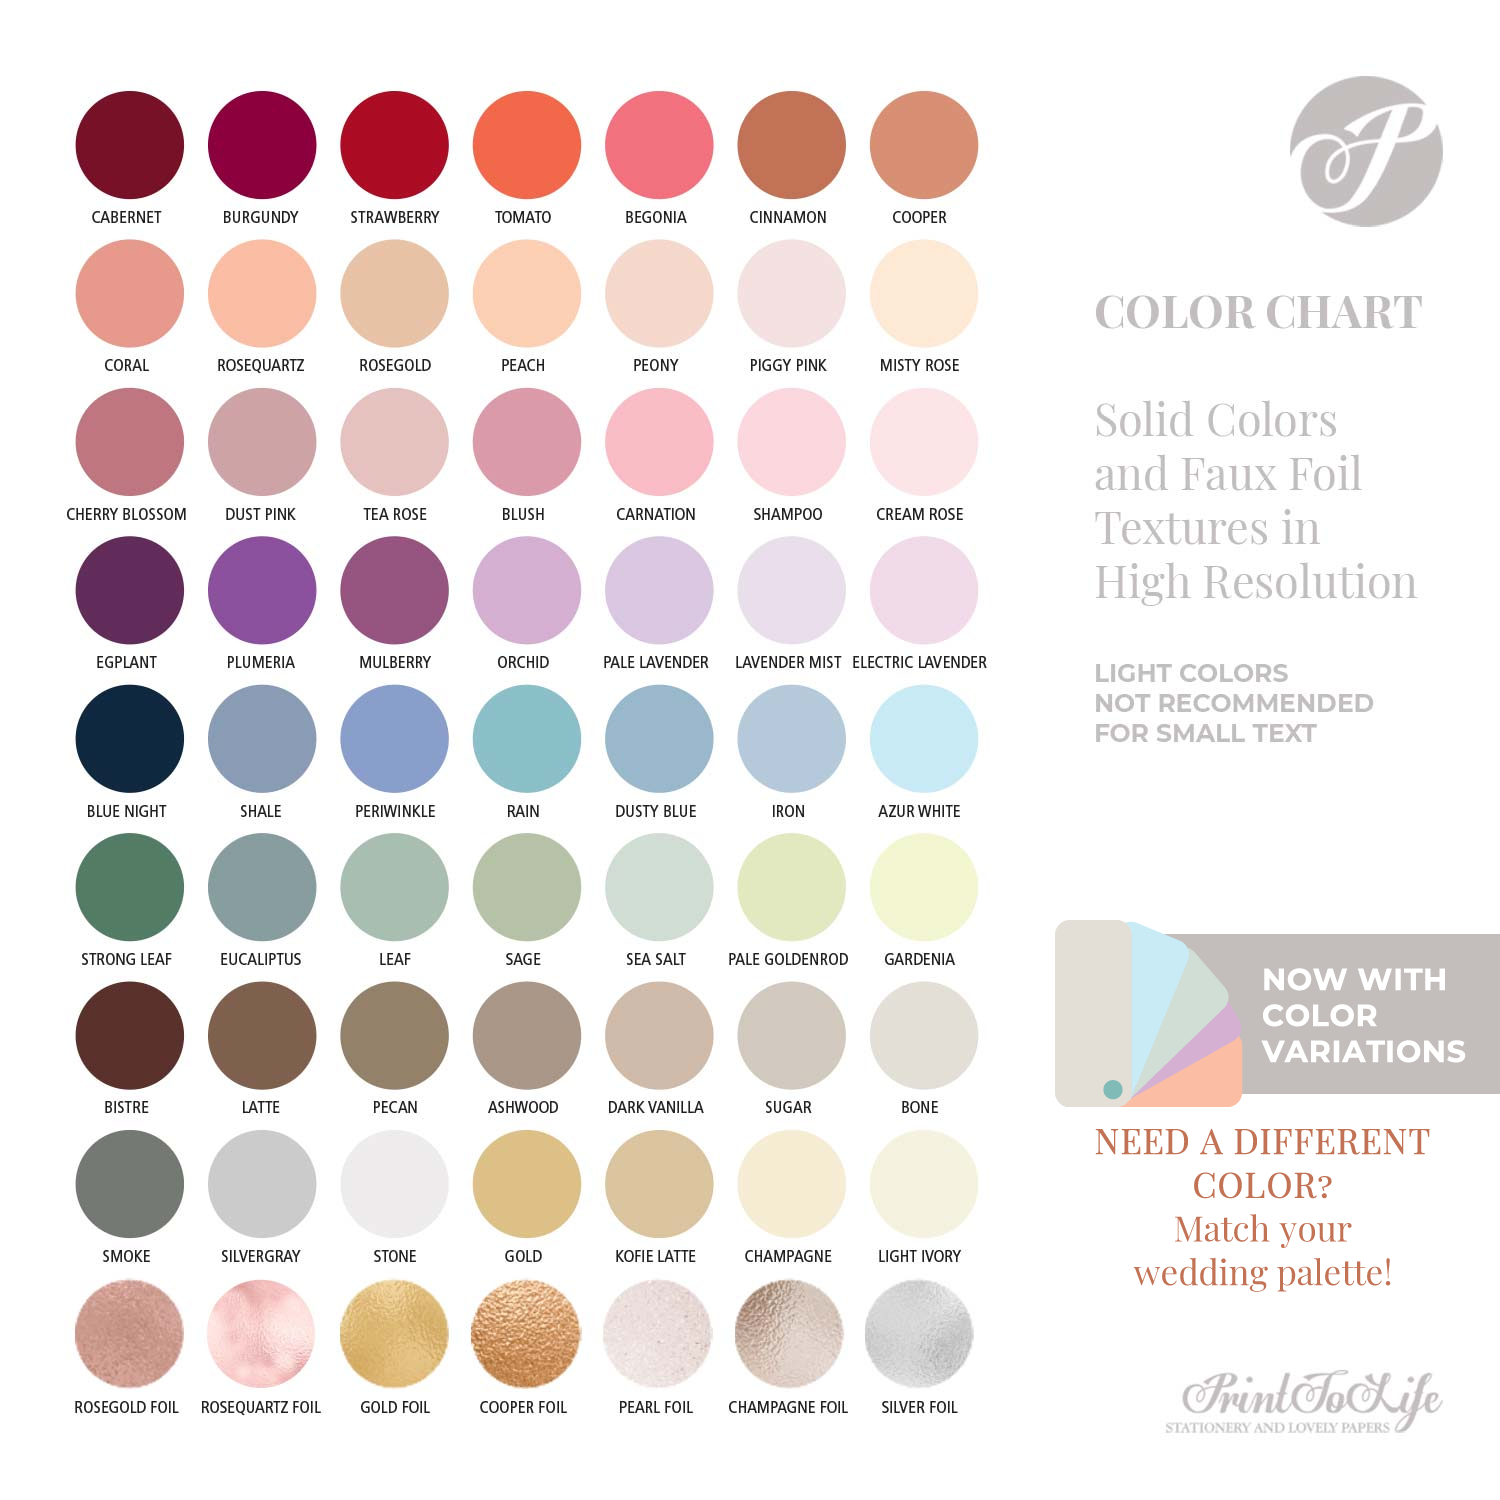 Match your wedding palette with Printolife